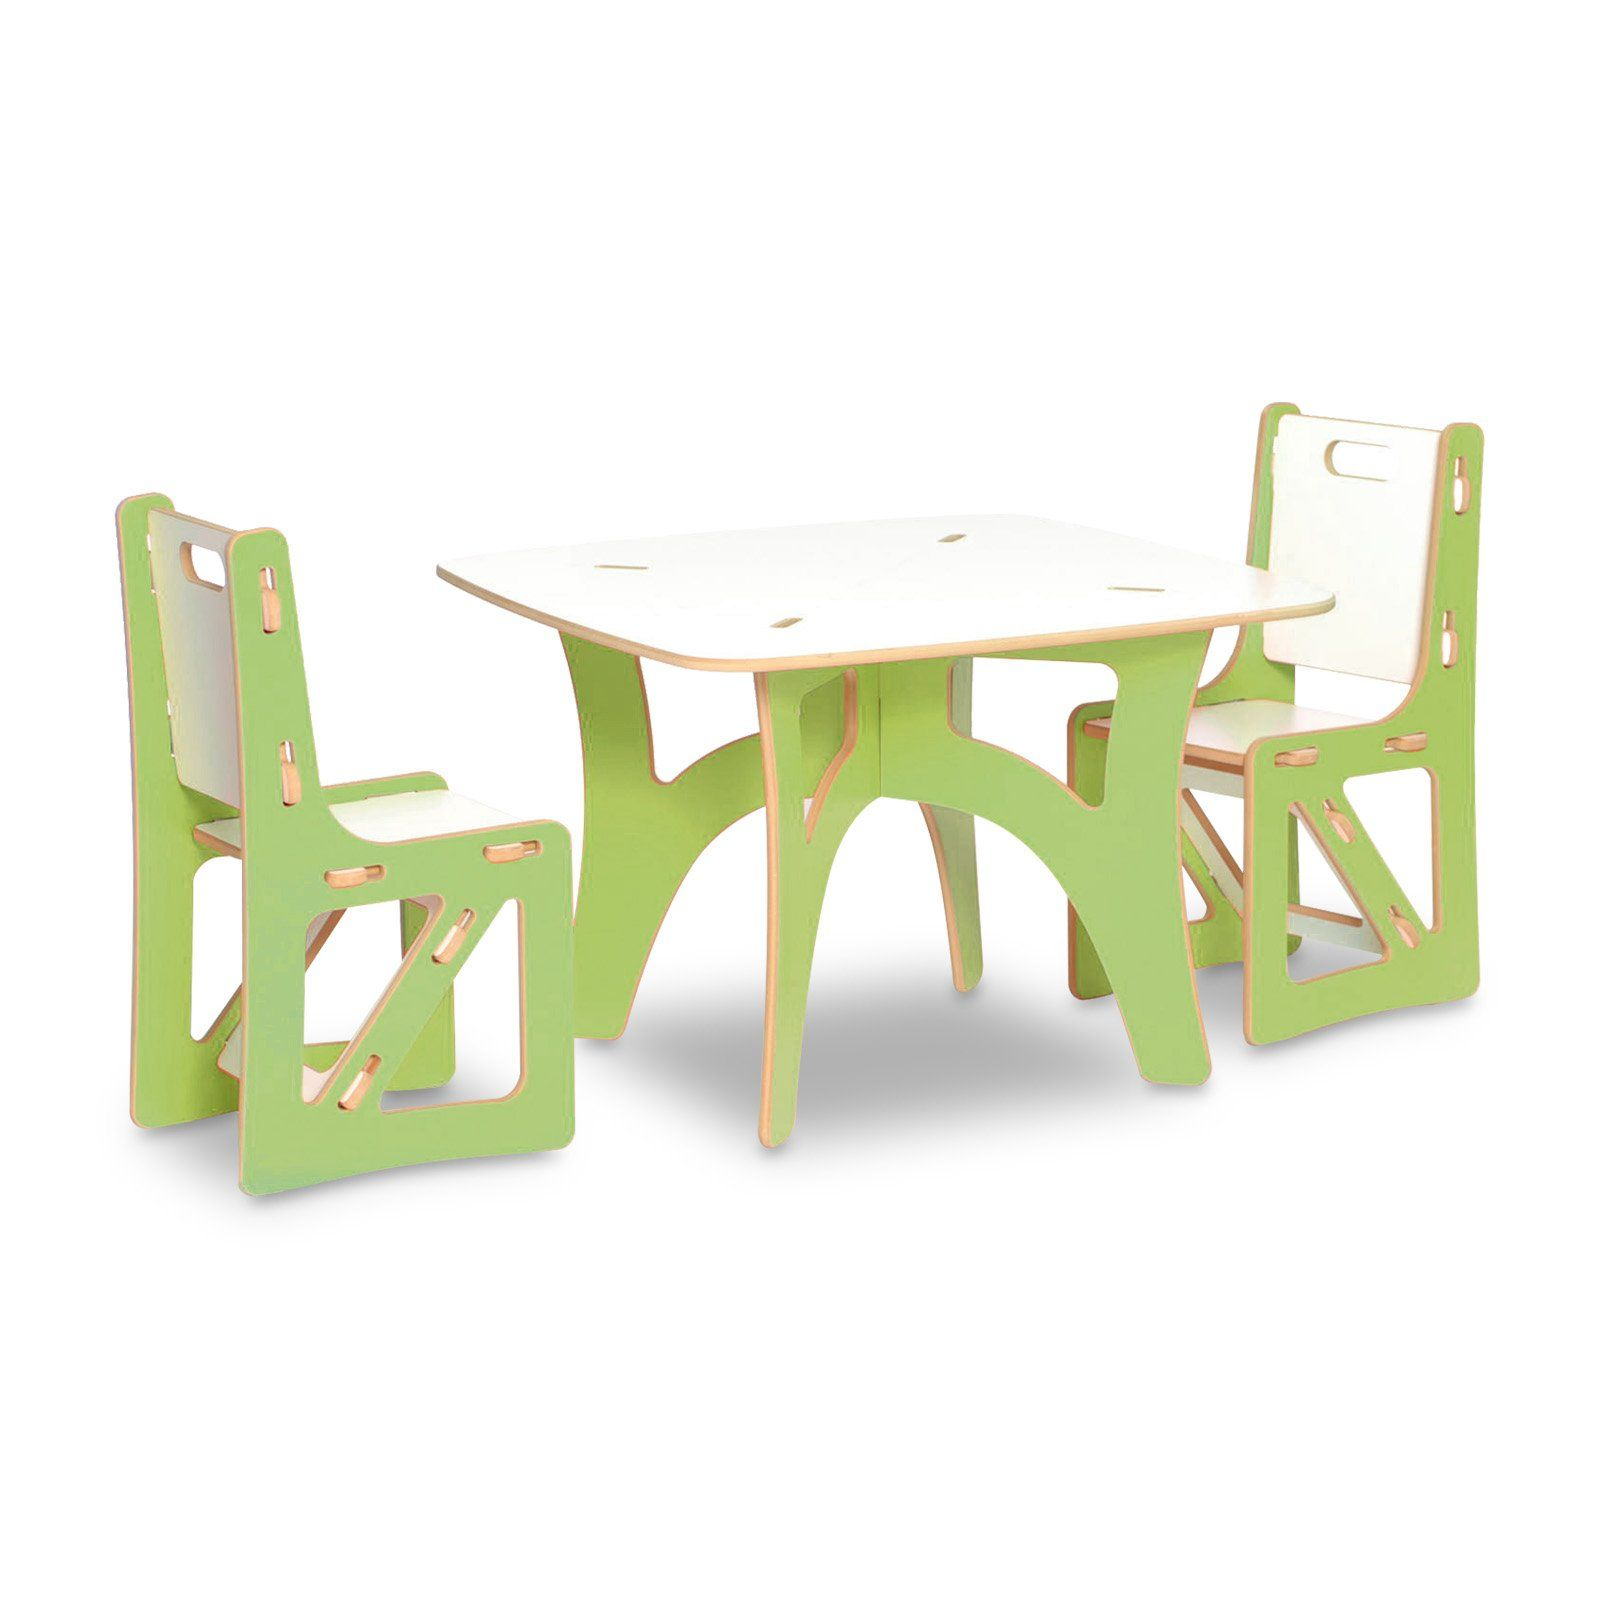 sprout kids table and chairs set ecofriendly  simple design  - sprout kids table and chairs set ecofriendly  simple design